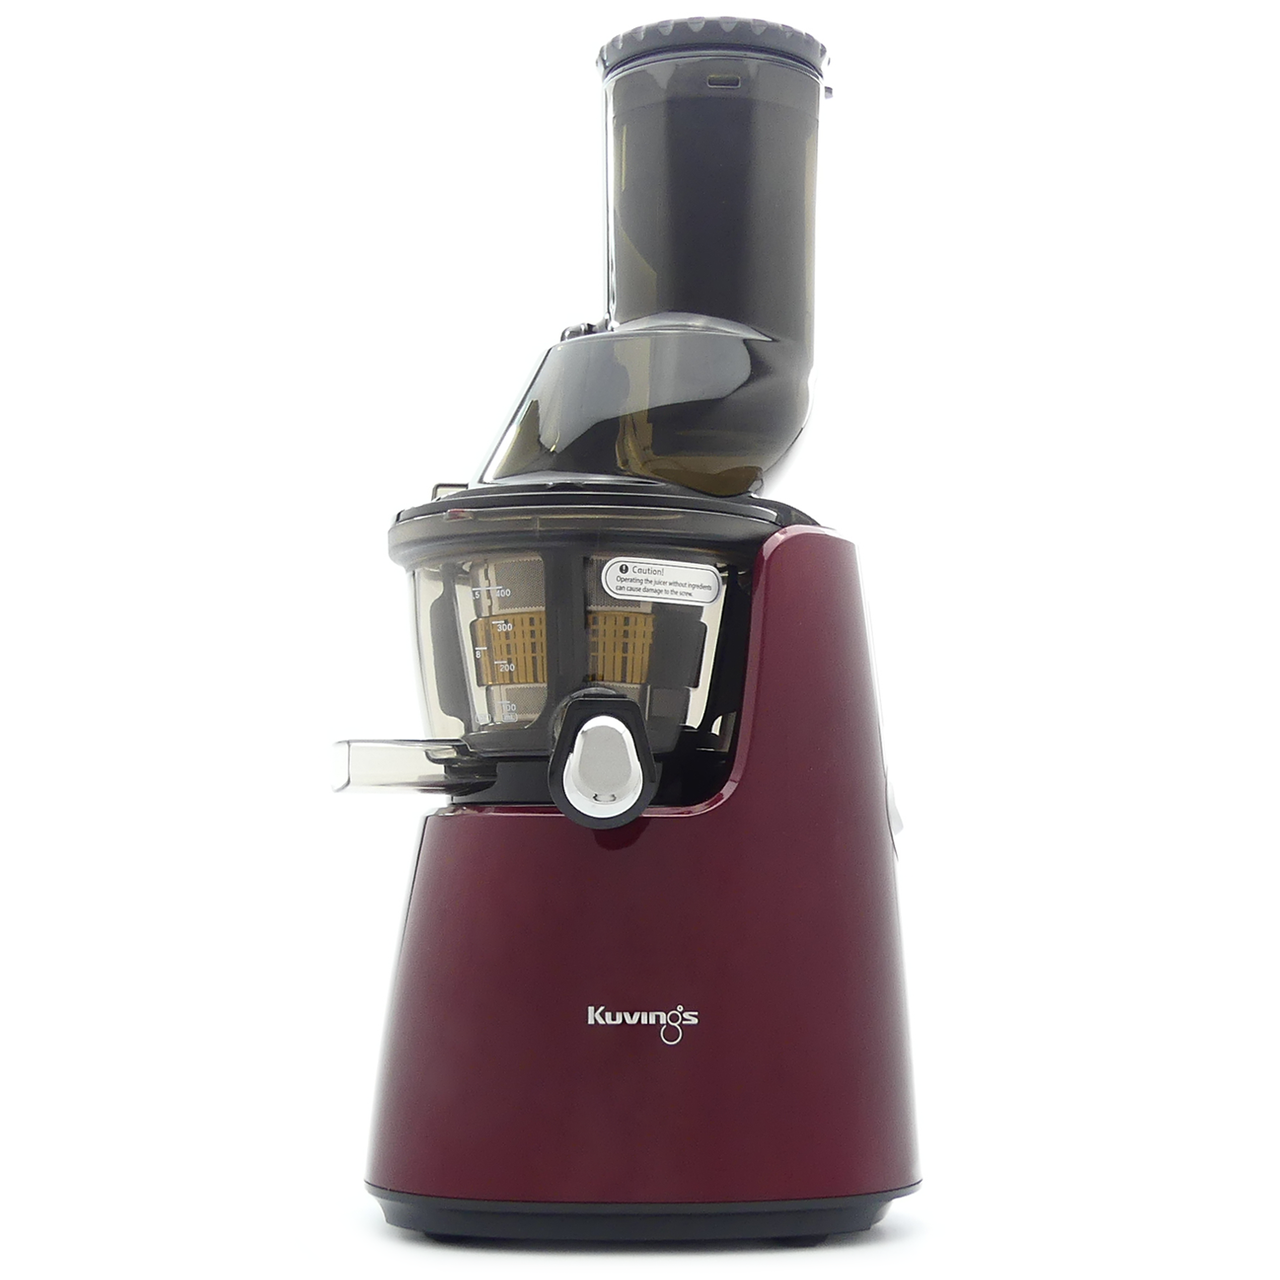 Kuvings Whole Fruit Juicer C9500 in Red